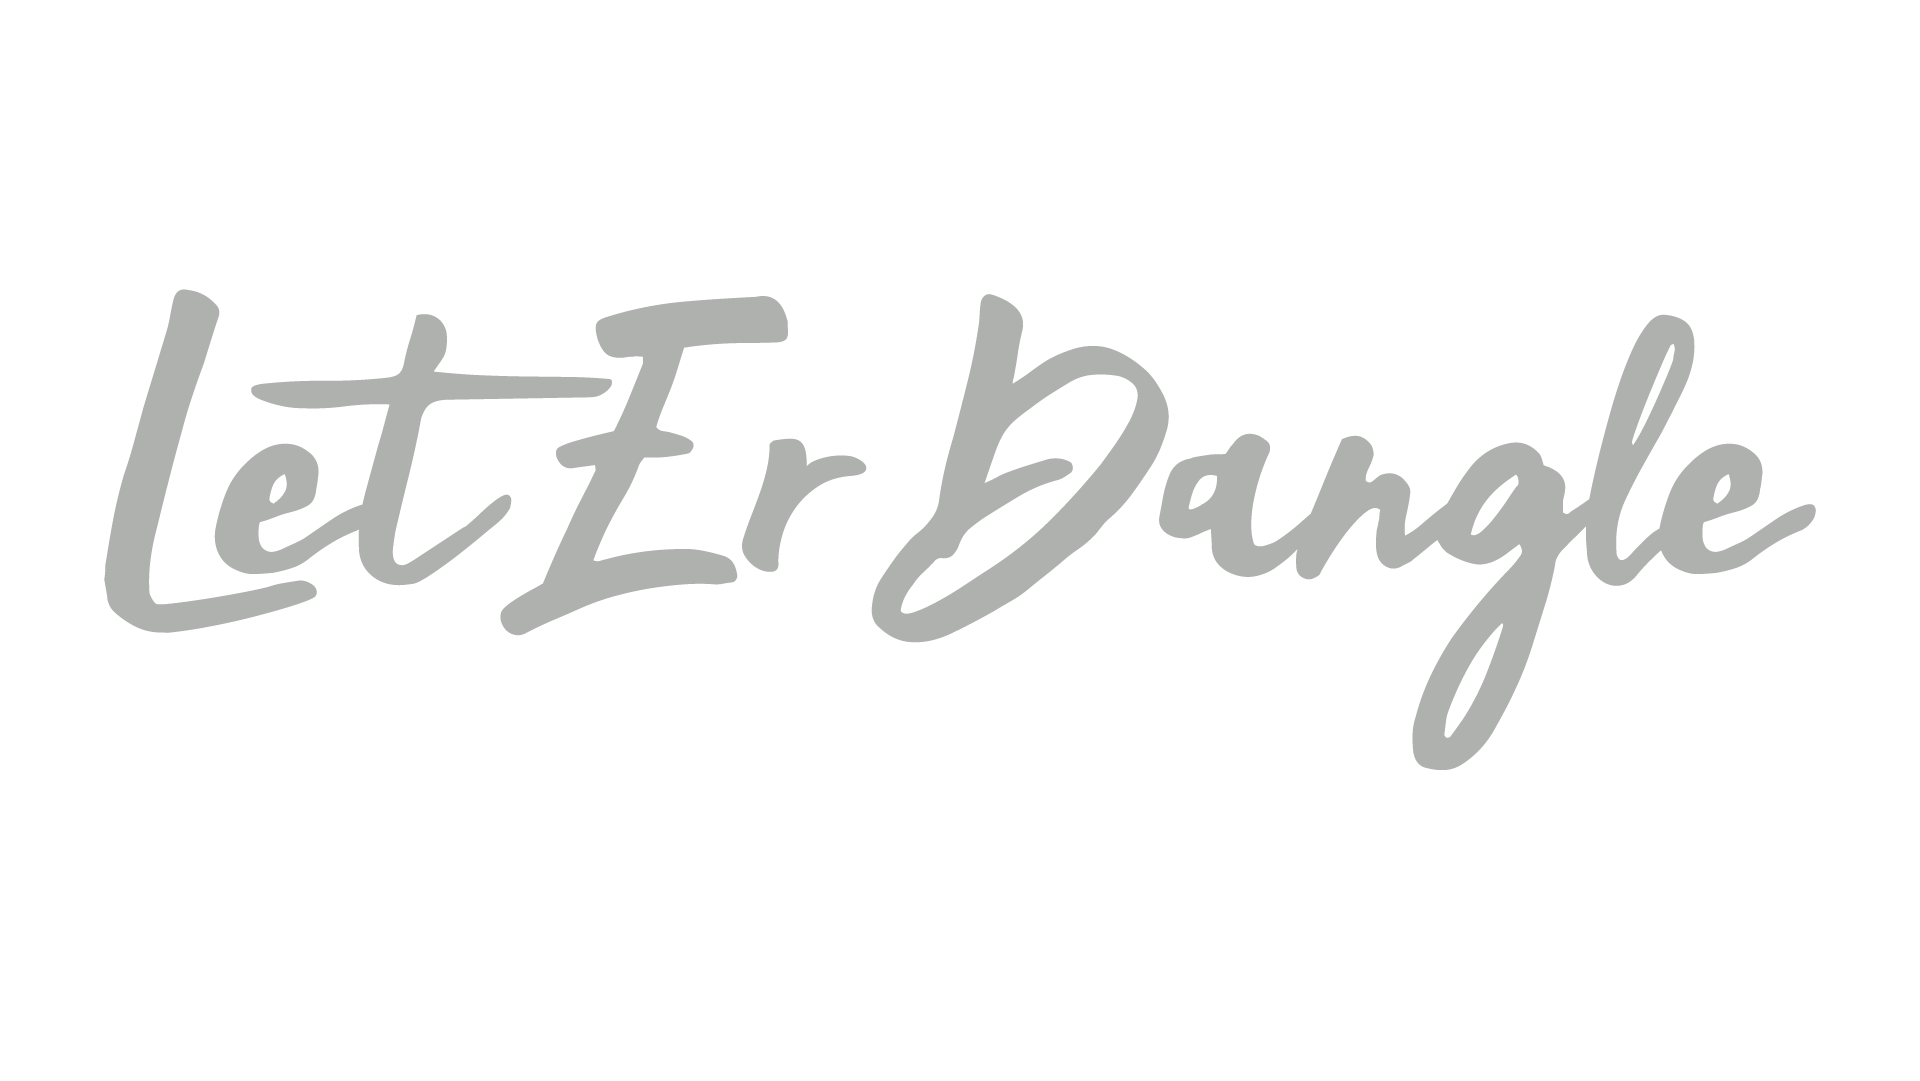 Decal - Let Er Dangle